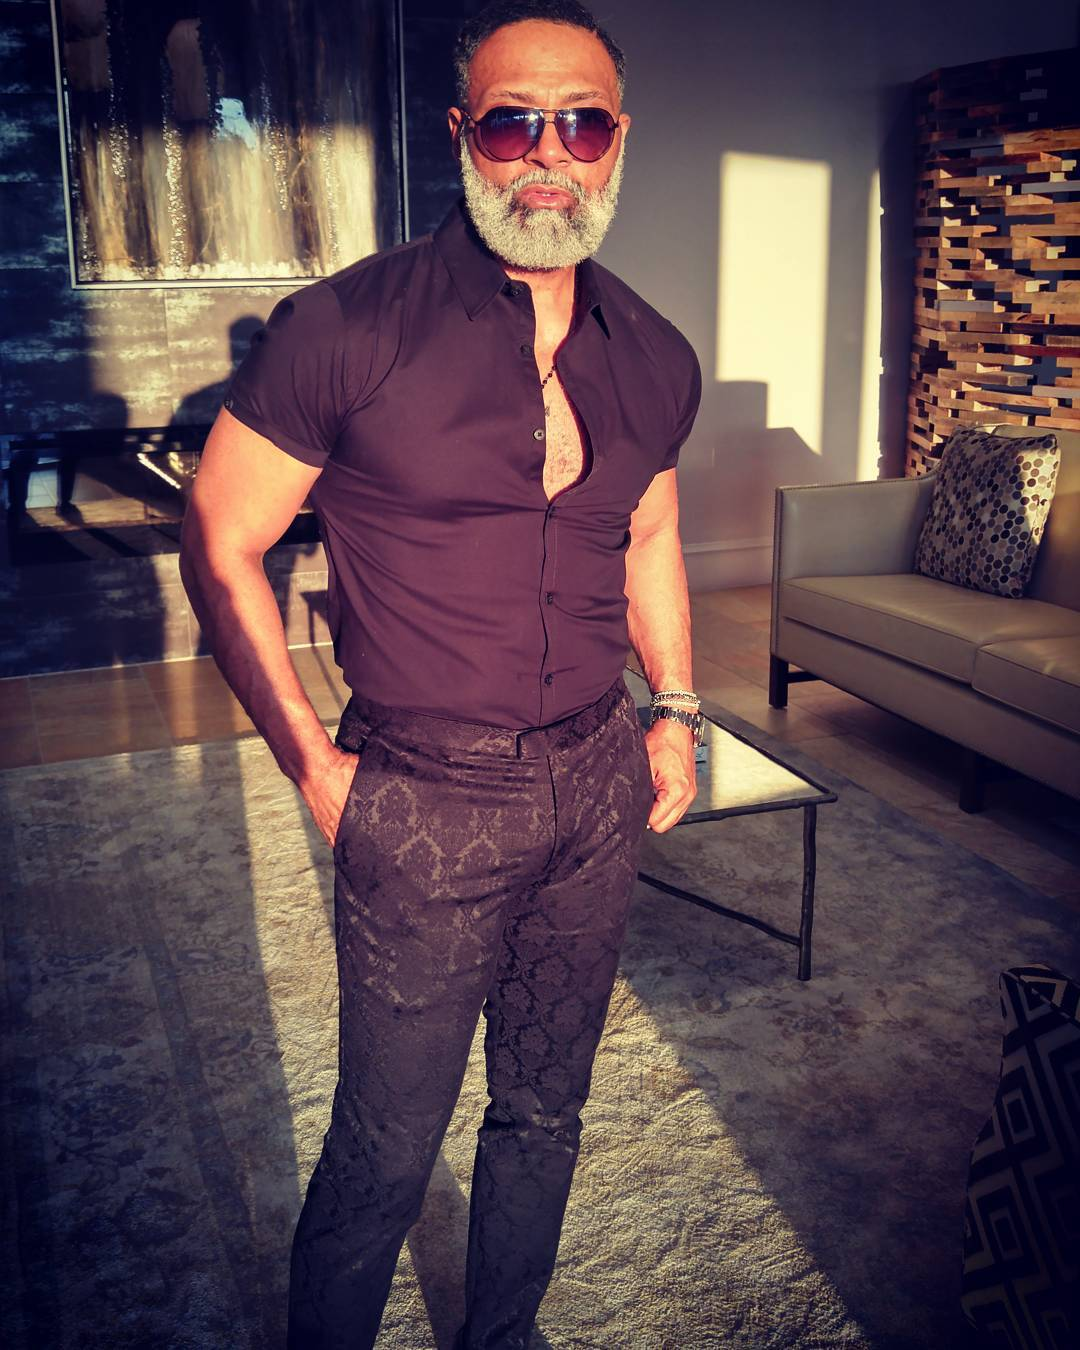 most-stylish-grandpas-on-the-internet-03